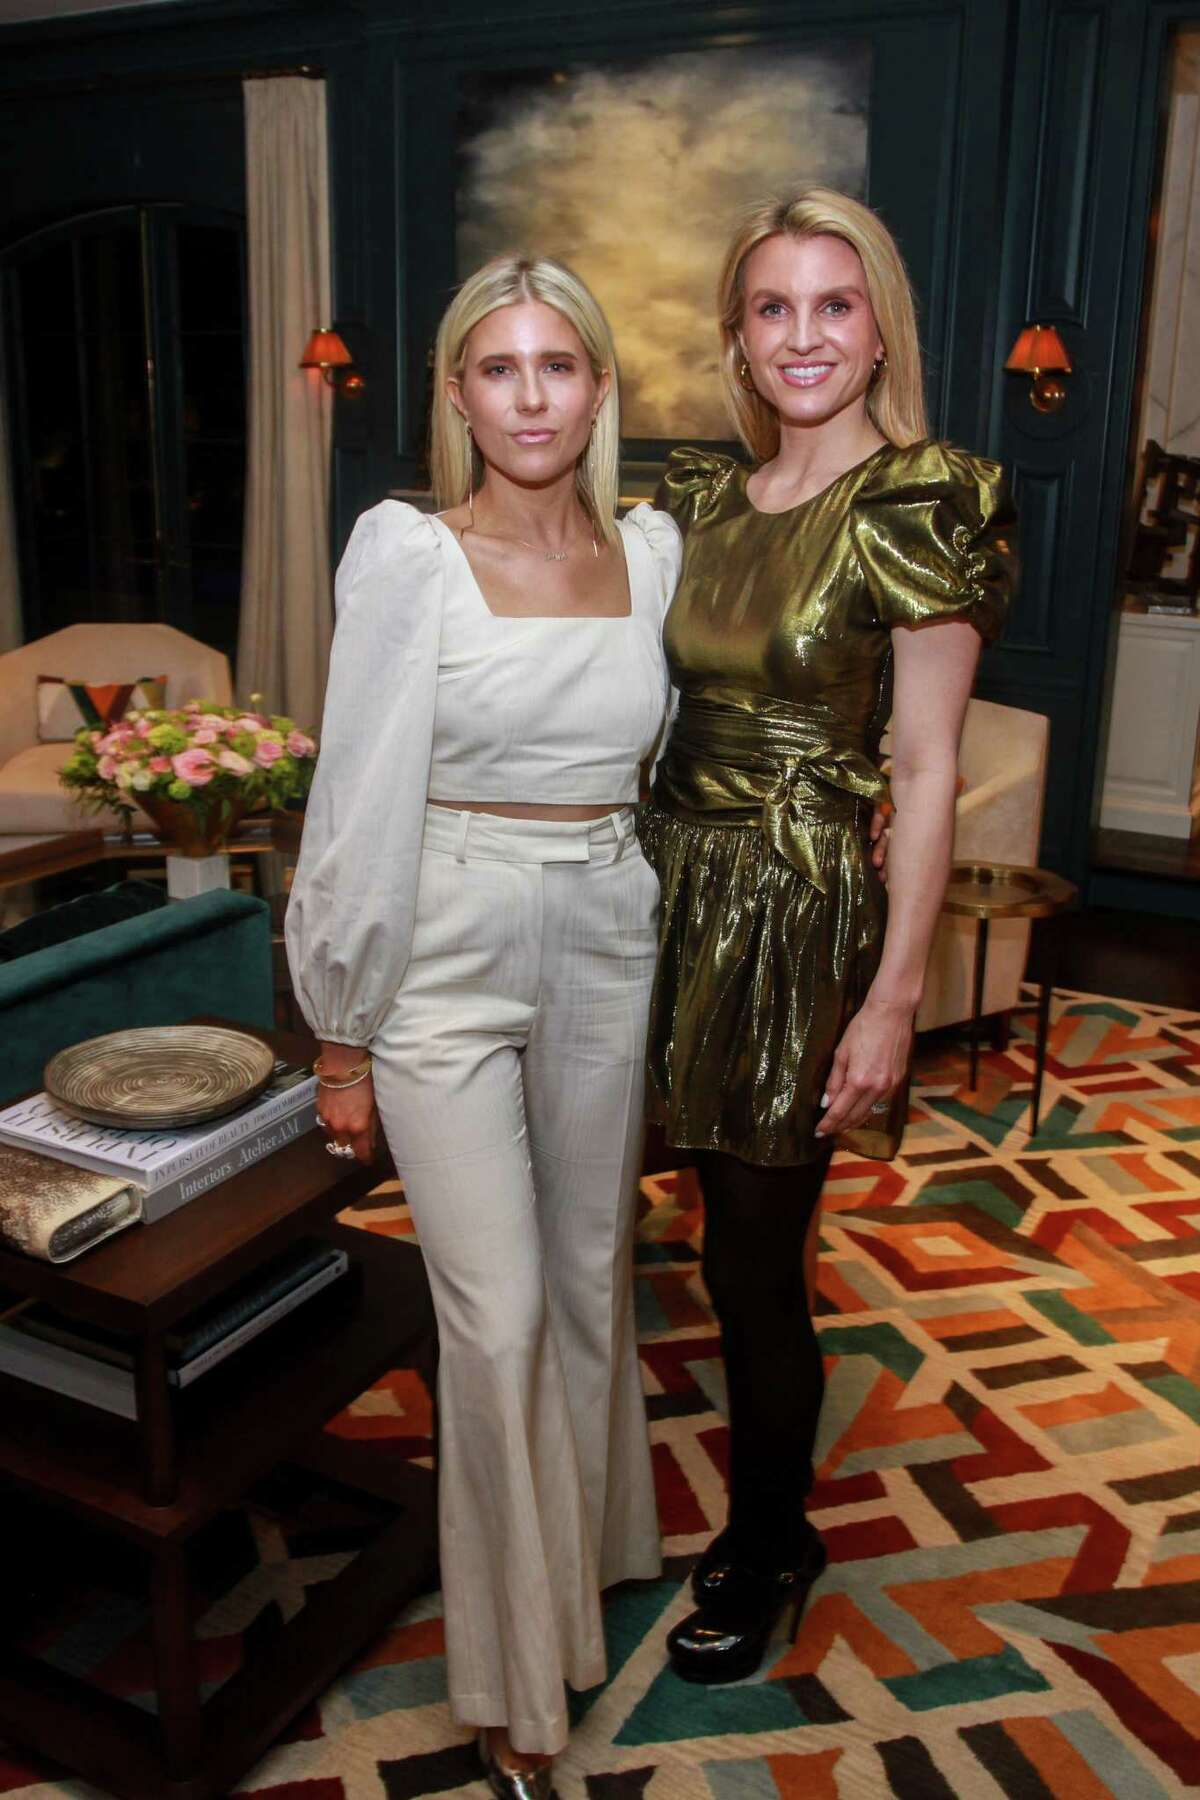 Lindley Arnoldy, left, and Allie Fields at a cocktail party for Best Dressed honorees in Houston on February 19, 2020.